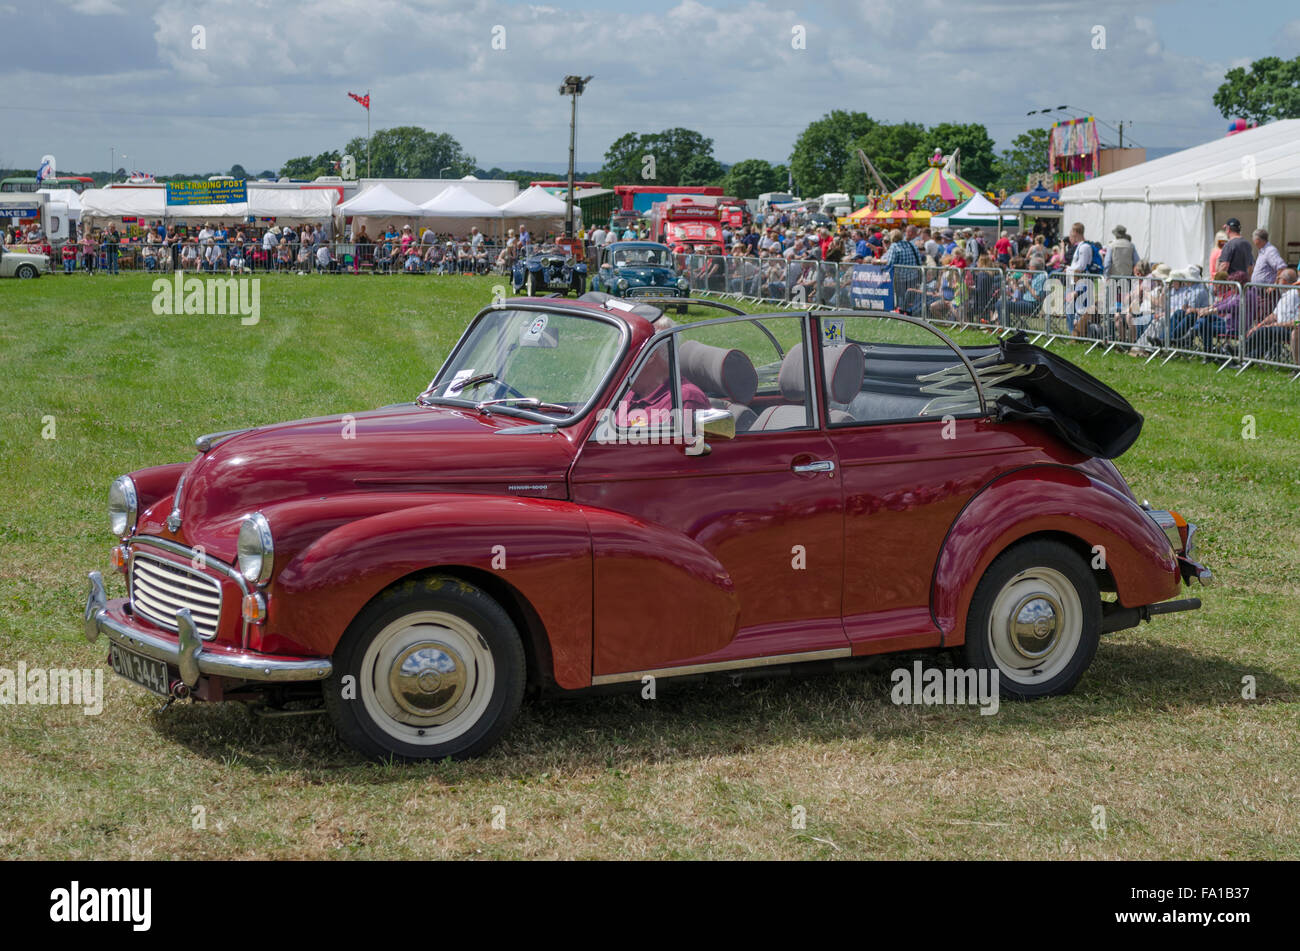 Maroon 1971 Morris Minor convertible  being driven around a parade ground at a classic car show - Stock Image